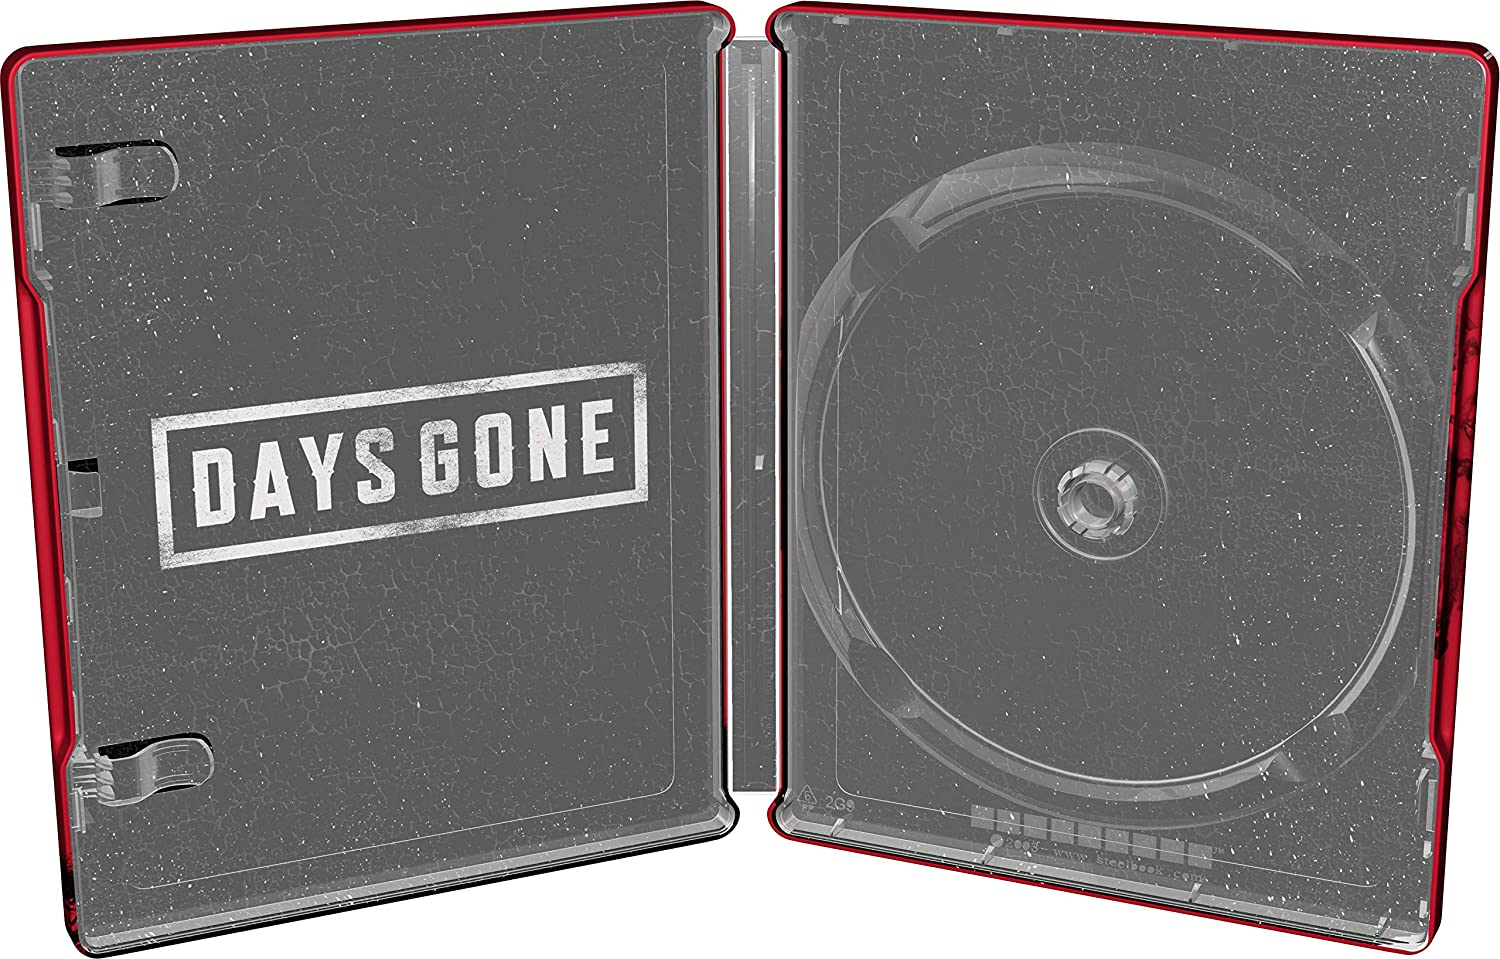 Days Gone with Limited Edition SteelBook (Exclusive to